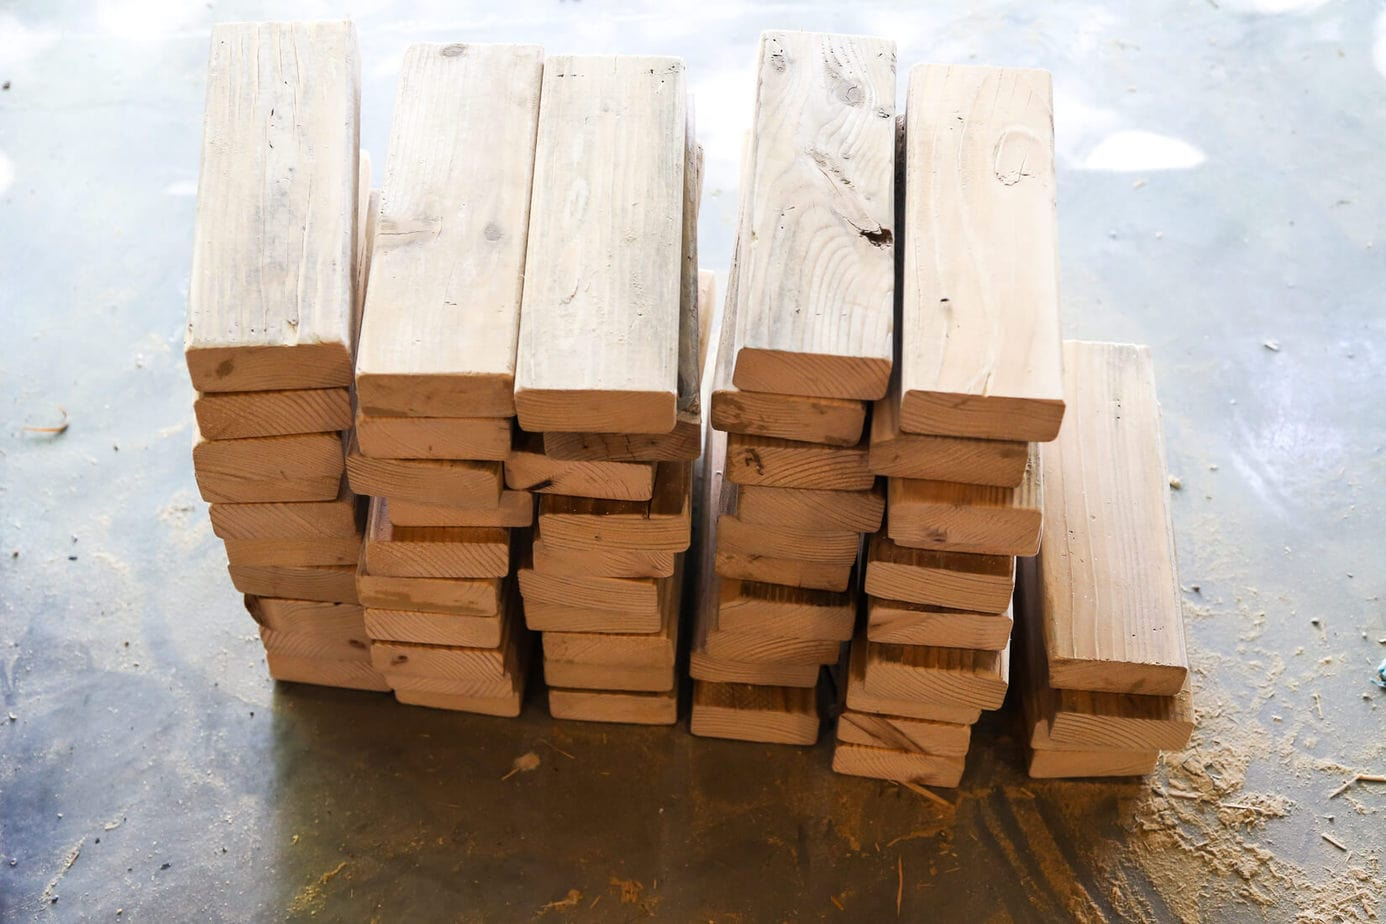 DIY Giant Jenga Outdoor Game - Fun party game. How to make jumbo Jenga blocks for your backyard, perfect for your next summer gathering, tailgate party, or just to keep your kids busy this summer! v